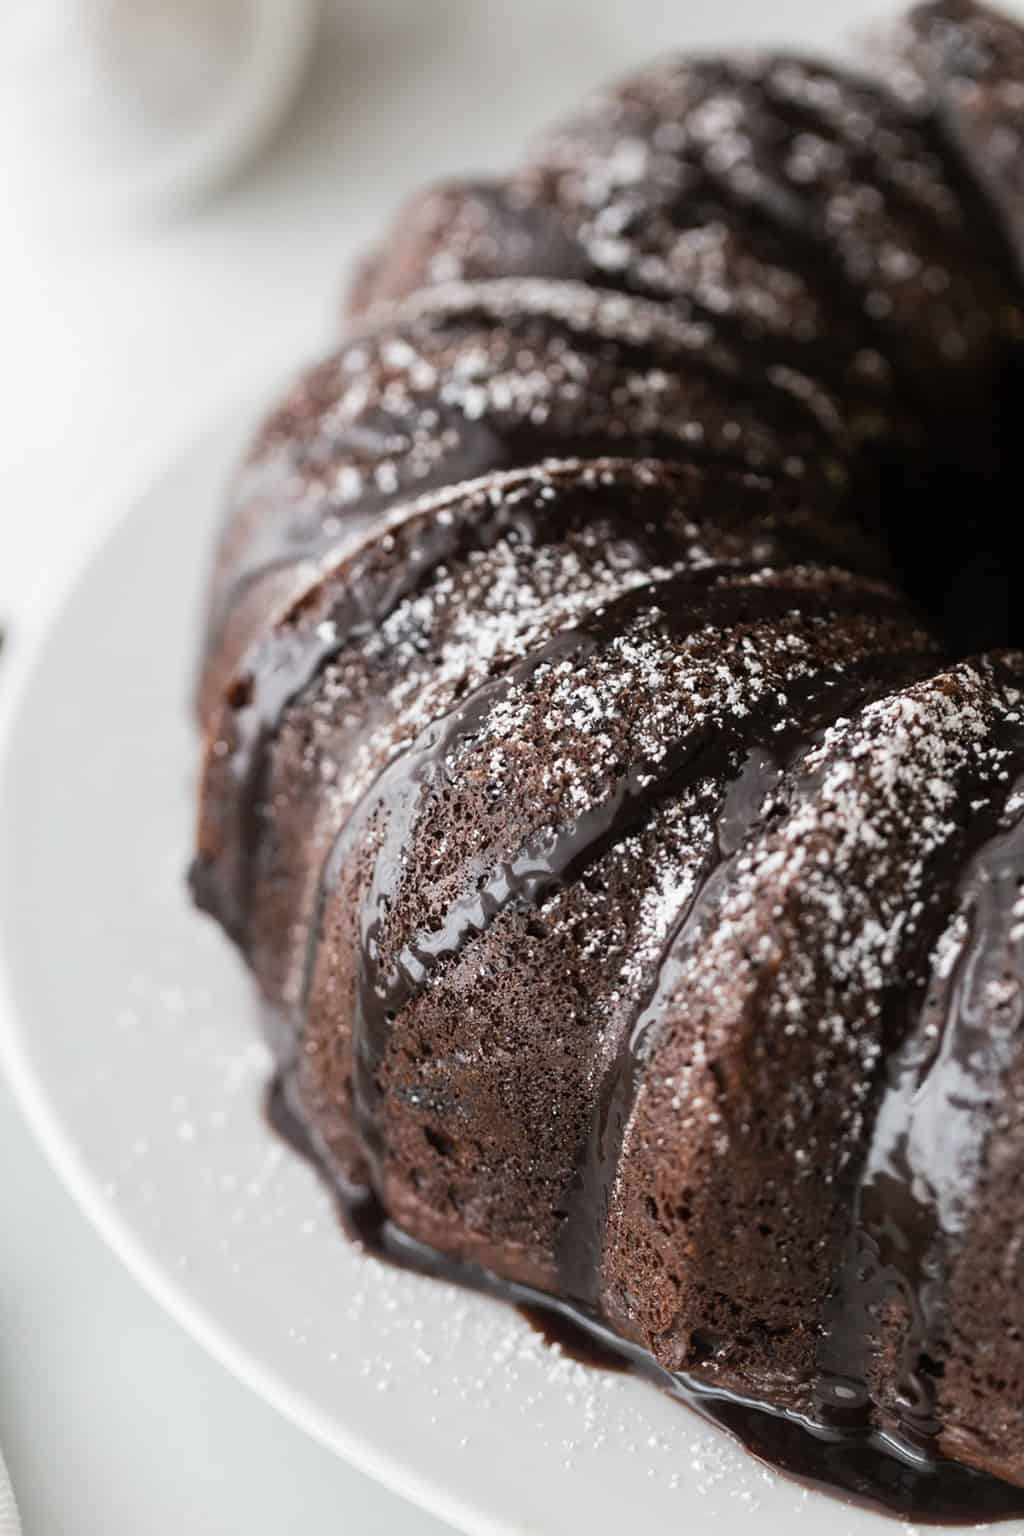 chocolate bundt cake on a white cake plate with powdered sugar sprinkled over the top